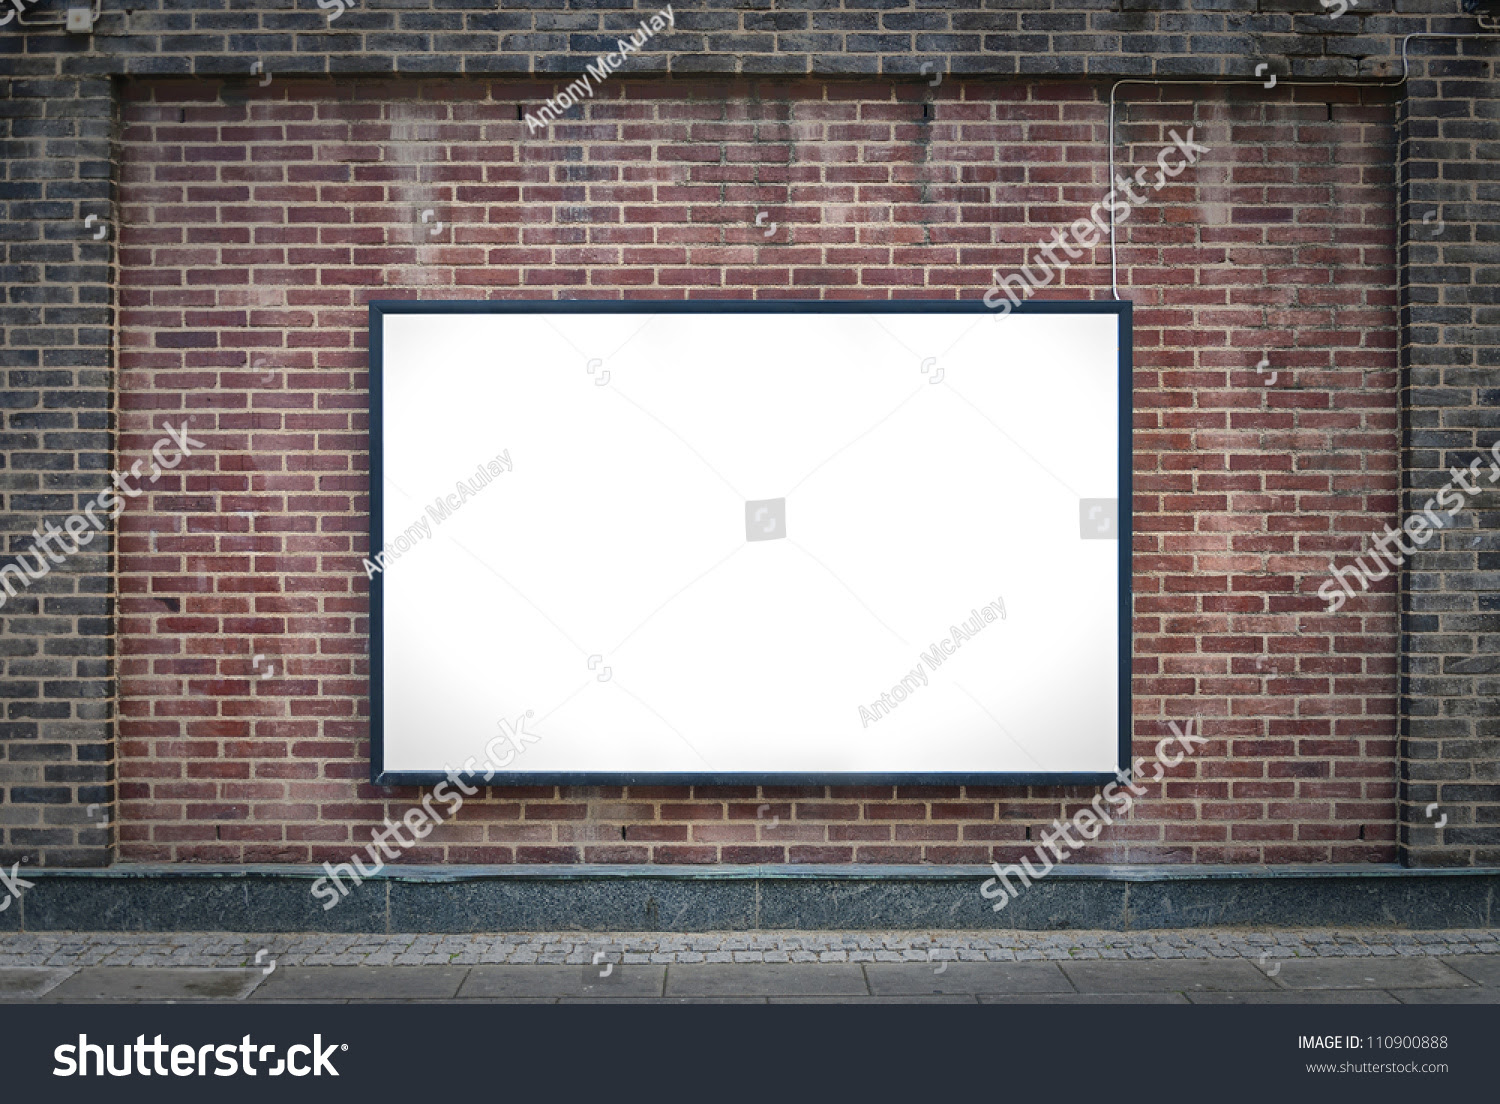 One Blank Billboard Attached Buildings Exterior Stock Photo ...